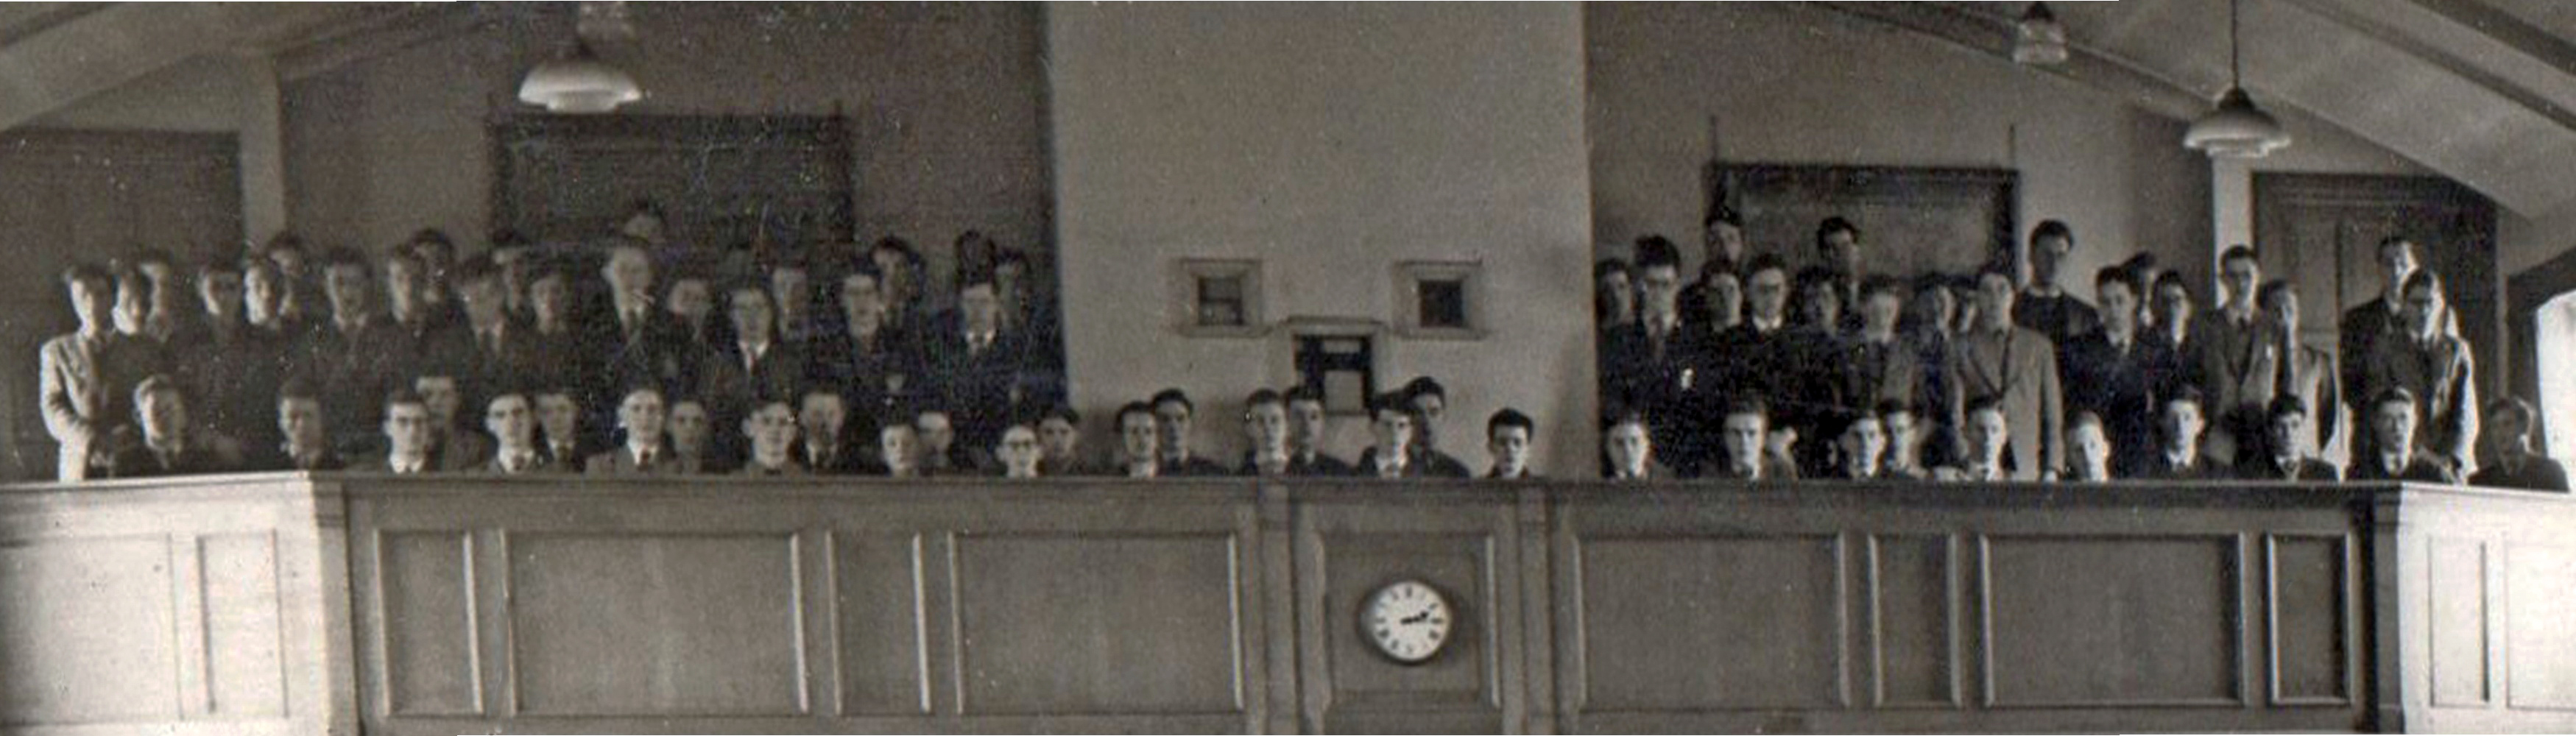 Sixth form on the balcony in 1956